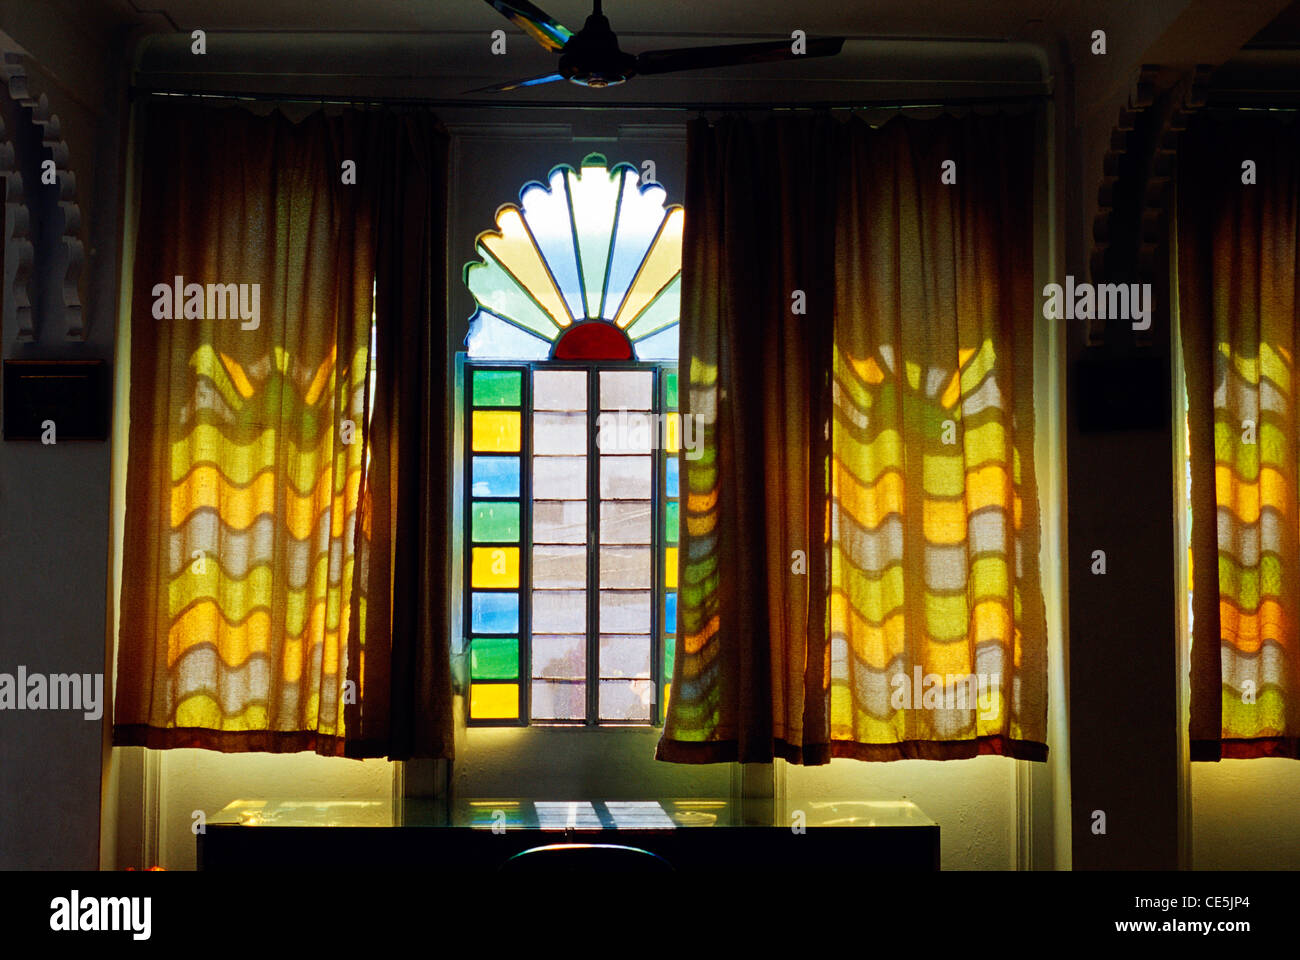 e2b8b4b7b194 Stained Glass window through curtains   Udaipur   Rajasthan   India - Stock  Image